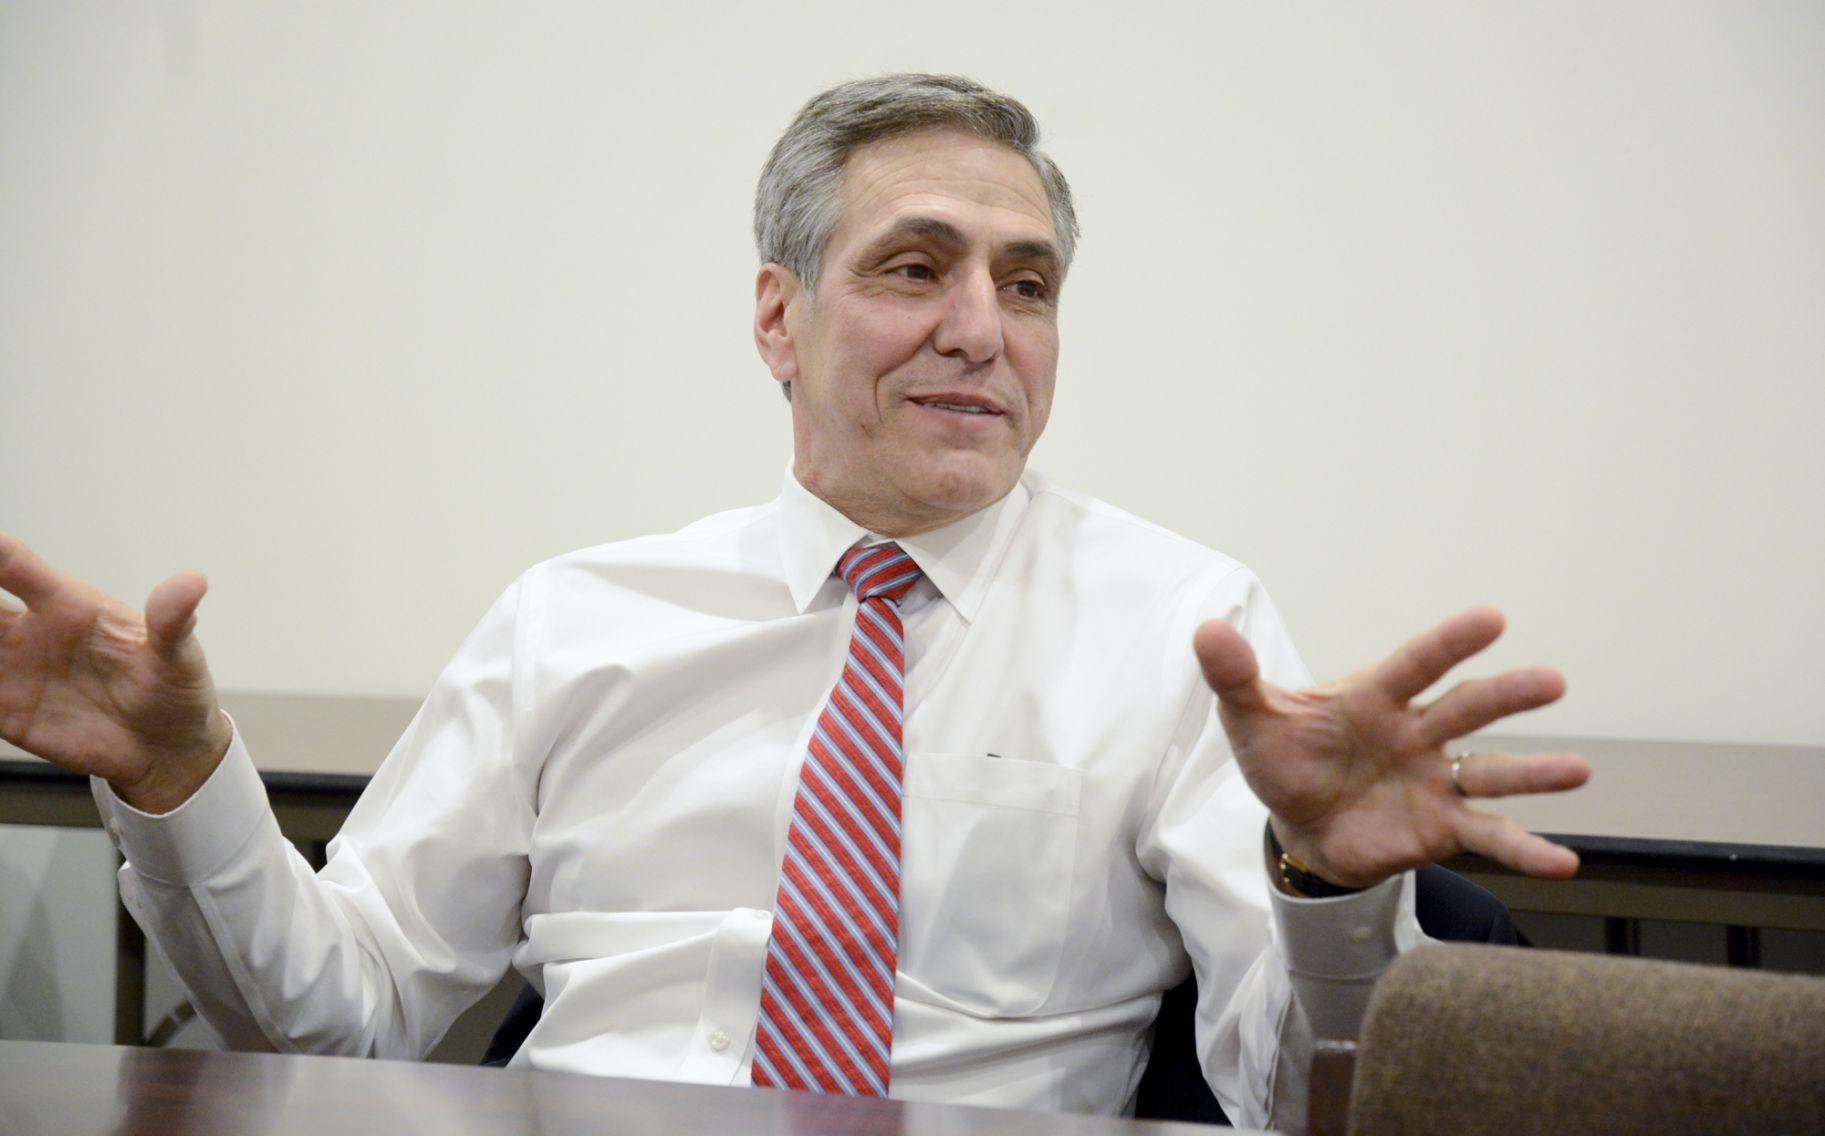 Trump Ally Lou Barletta Announces Bid For US Senate